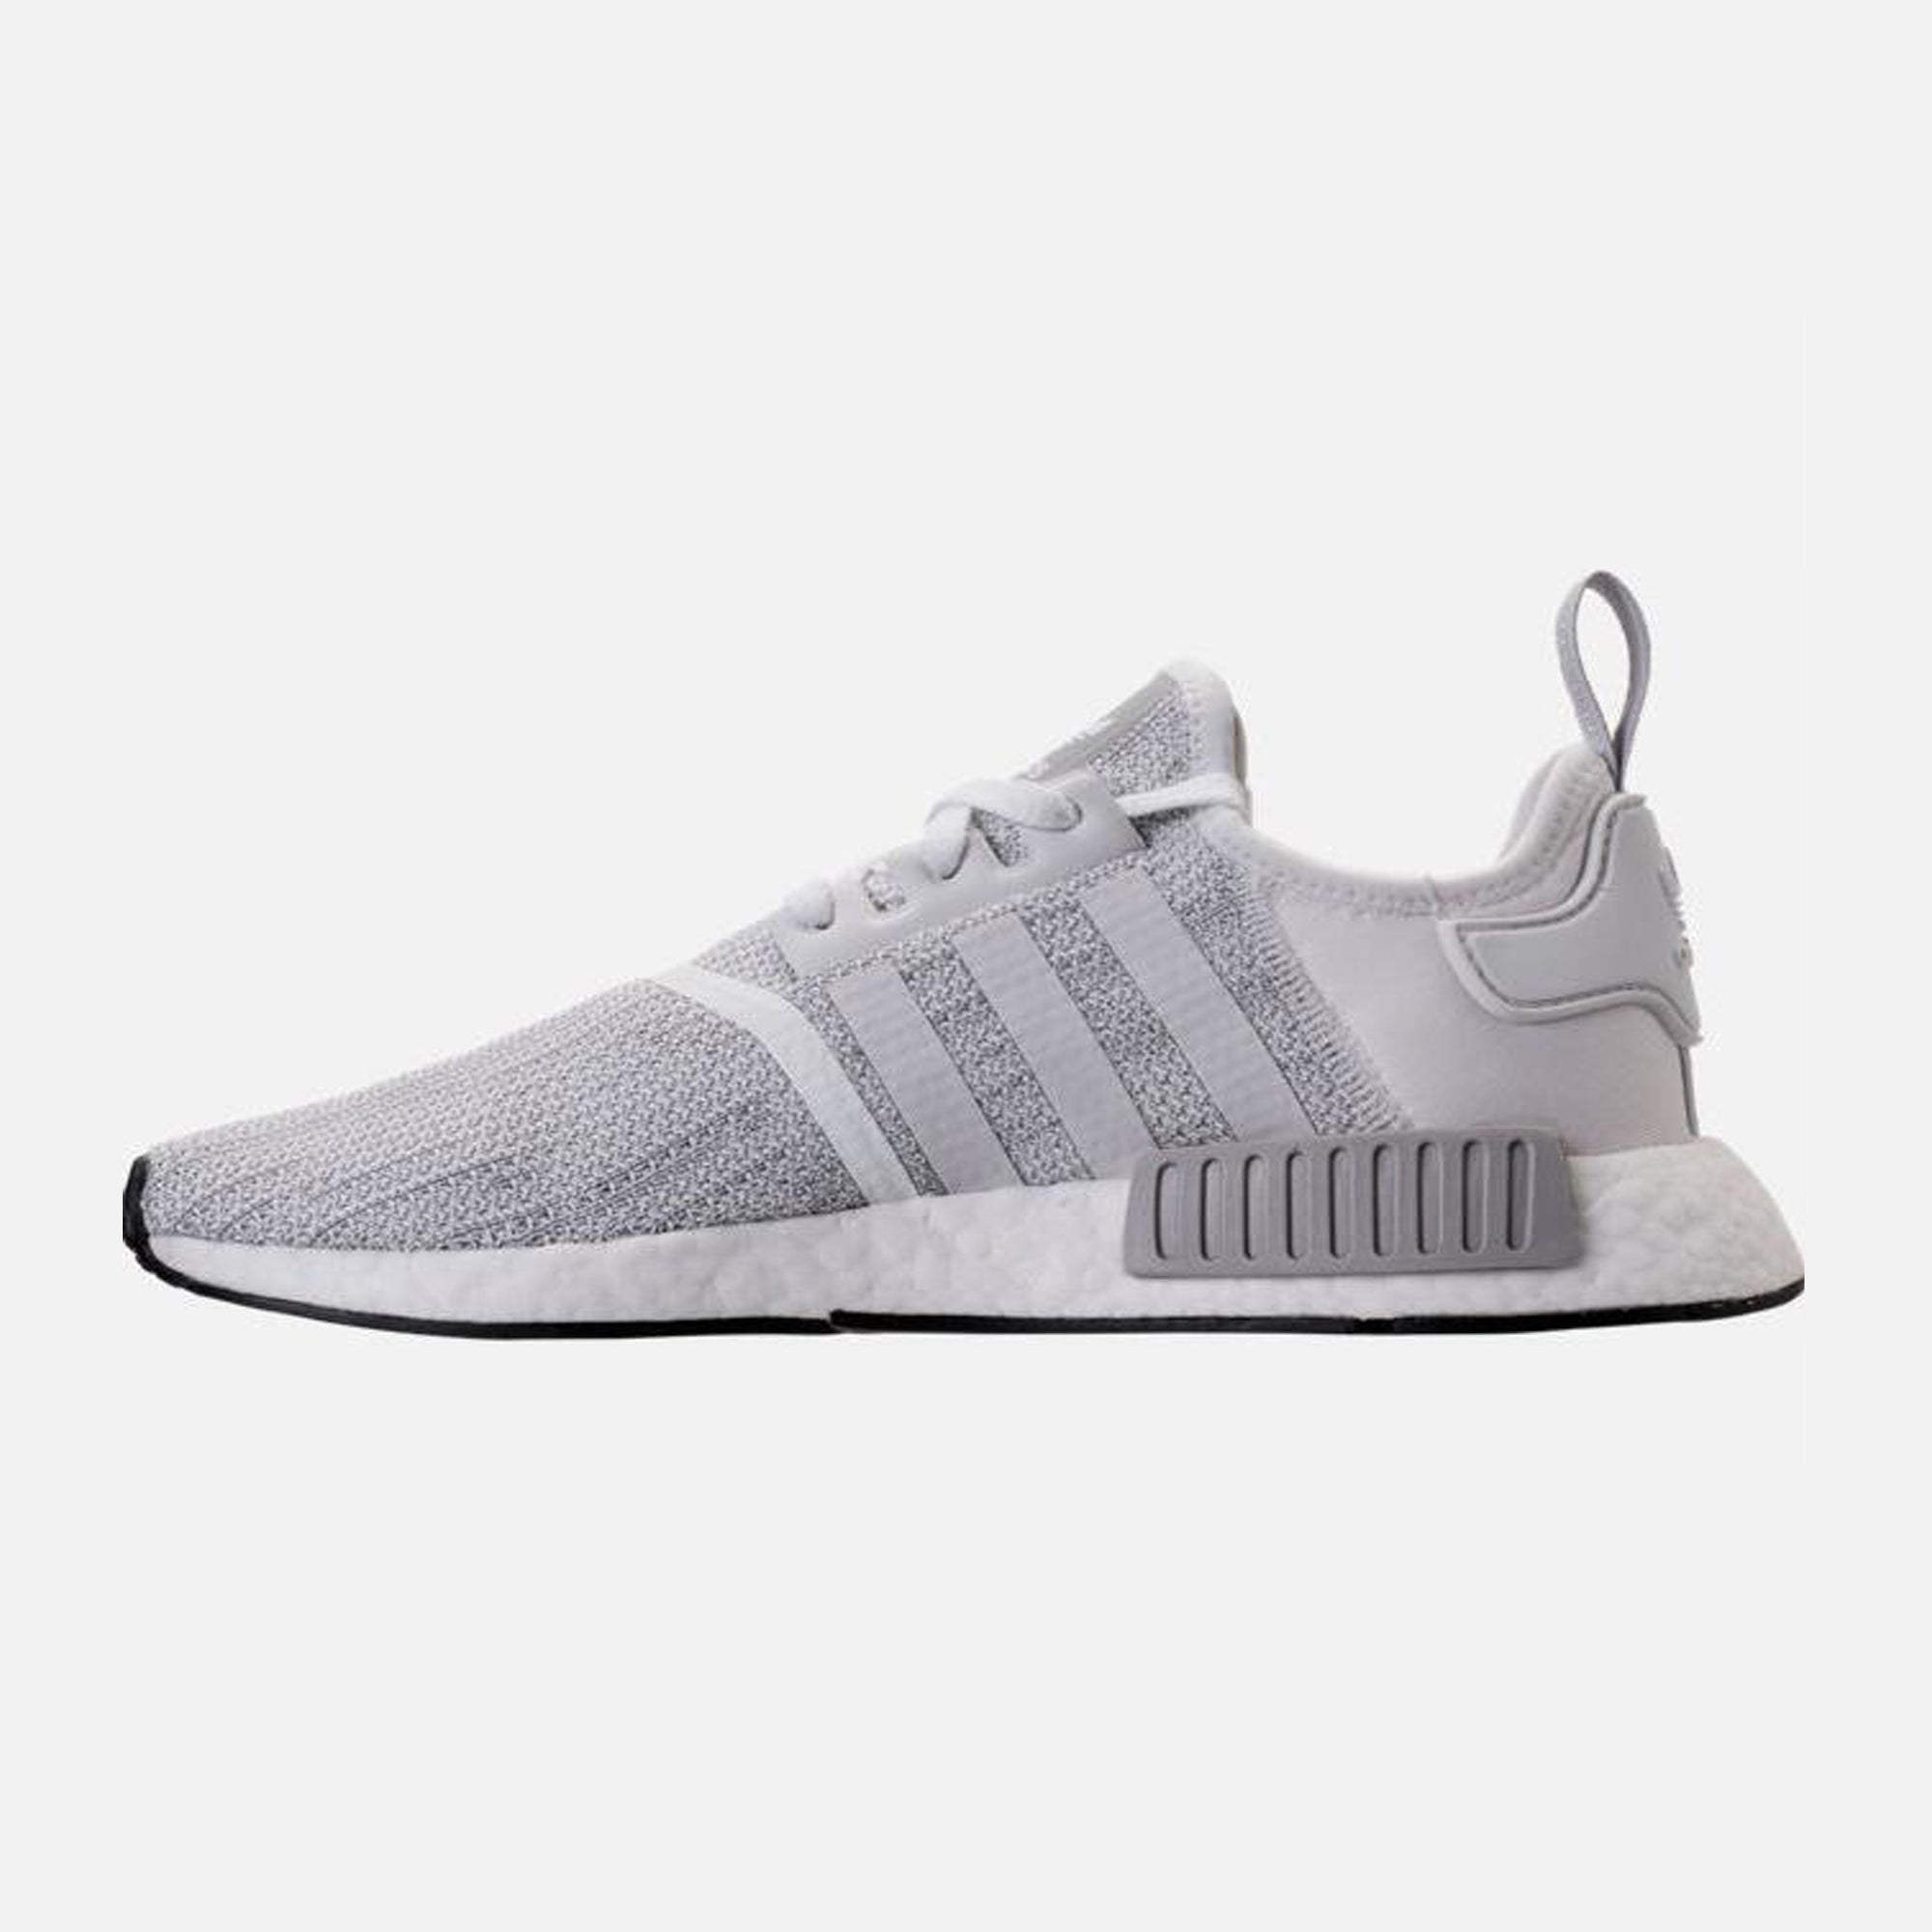 189a0d9c3 ... spain mens adidas nmd runner casual shoes white trace grey pzozo 658fb  6b59e ...